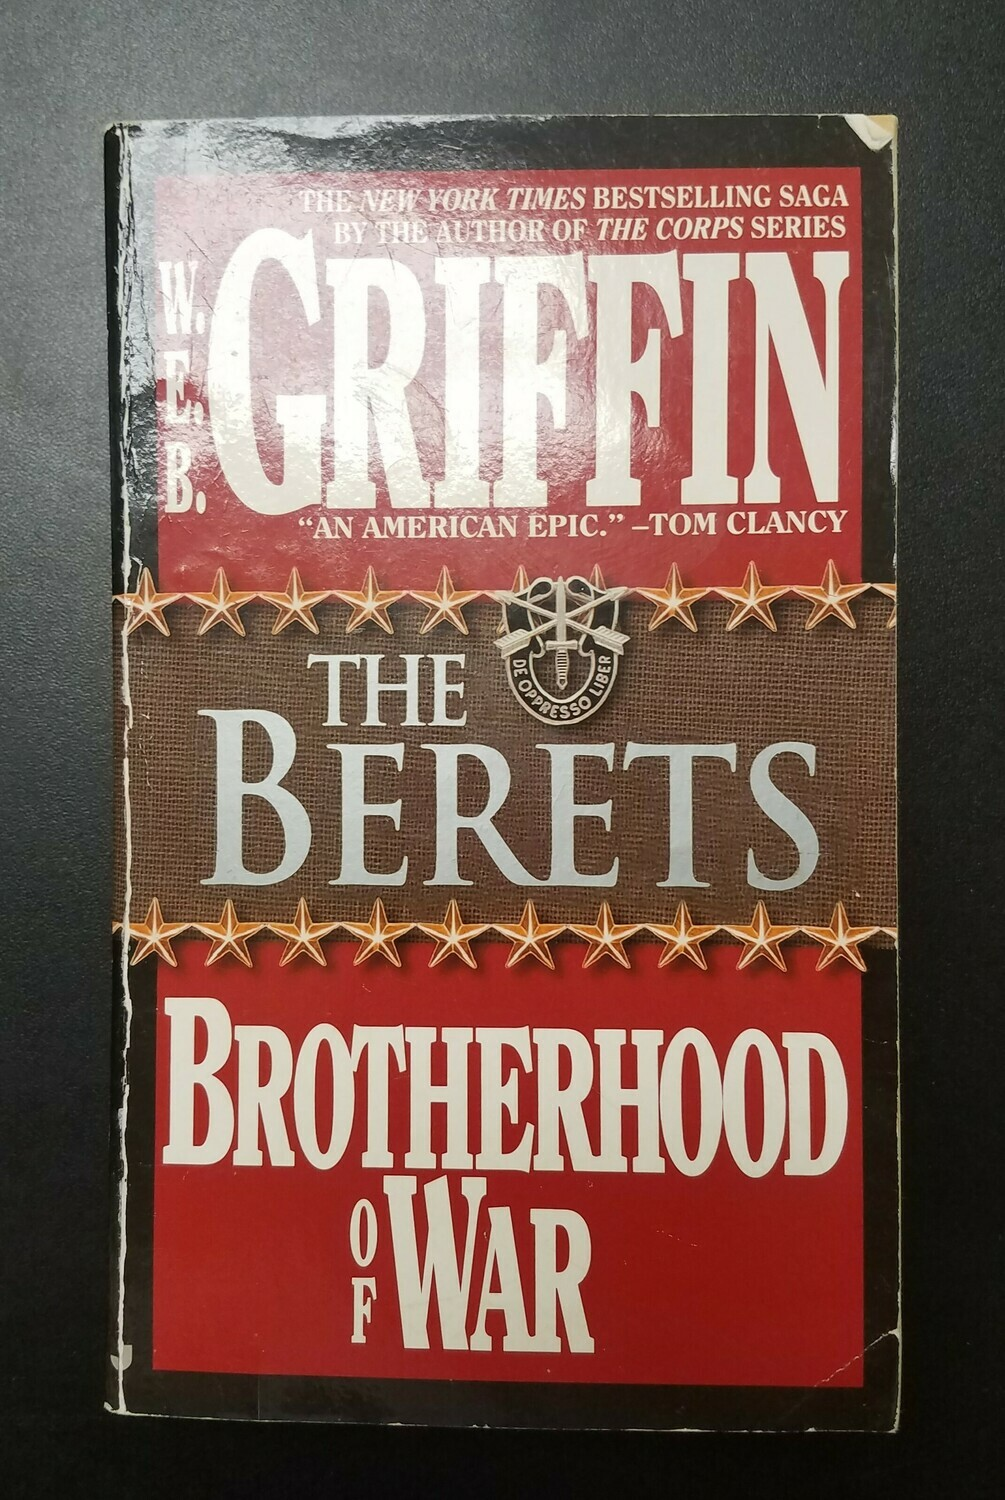 Brotherhood of War: The Berets by W.E.B. Griffin